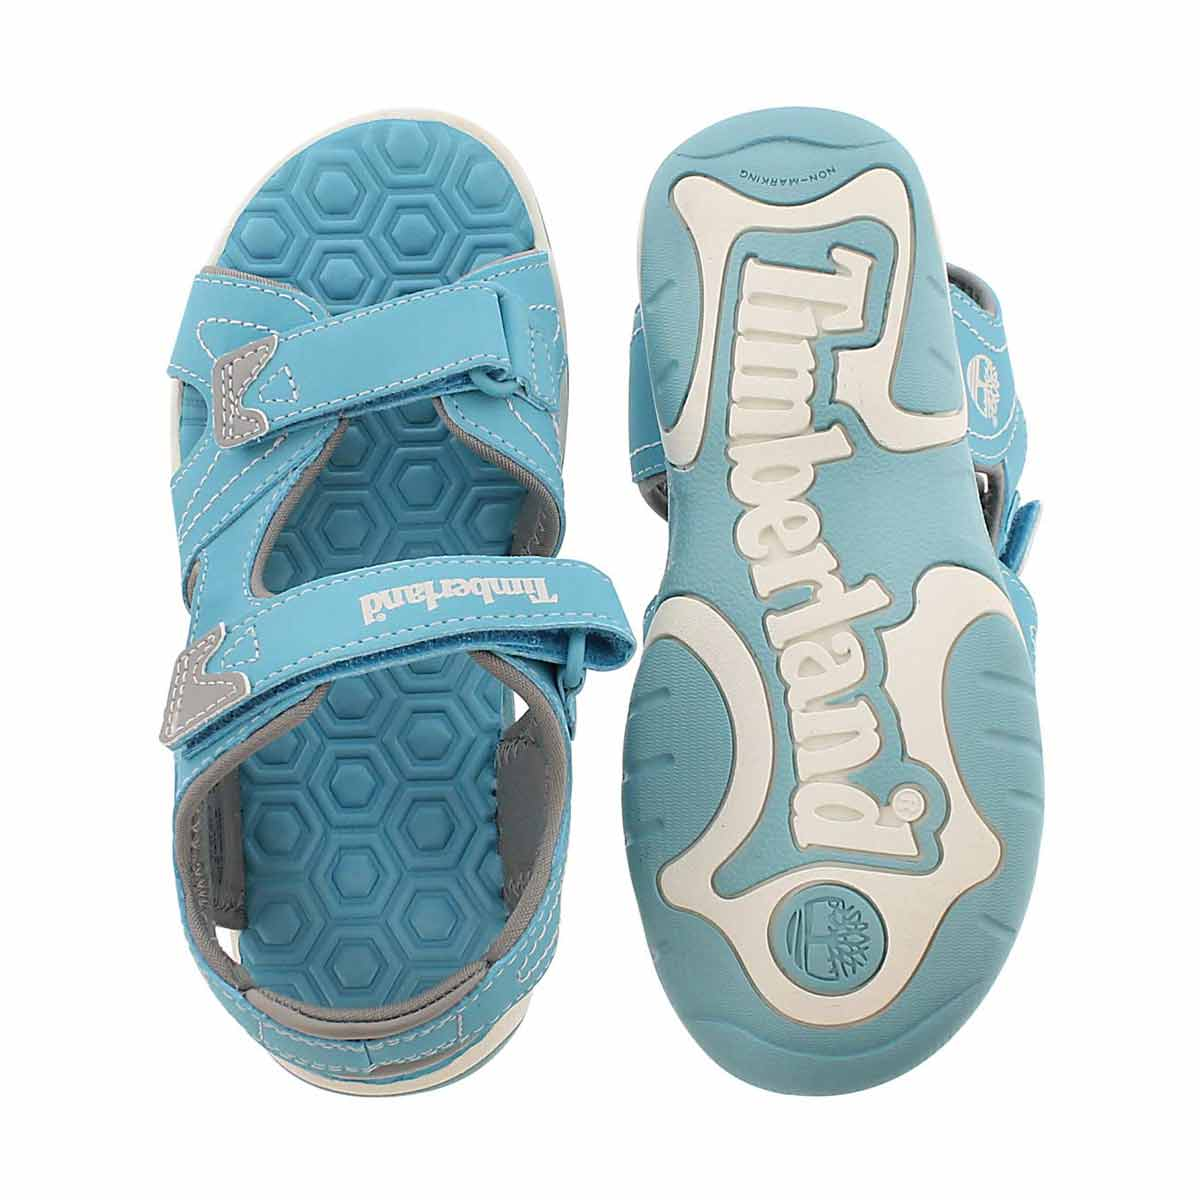 Chlds Adventure Seeker blue sandal